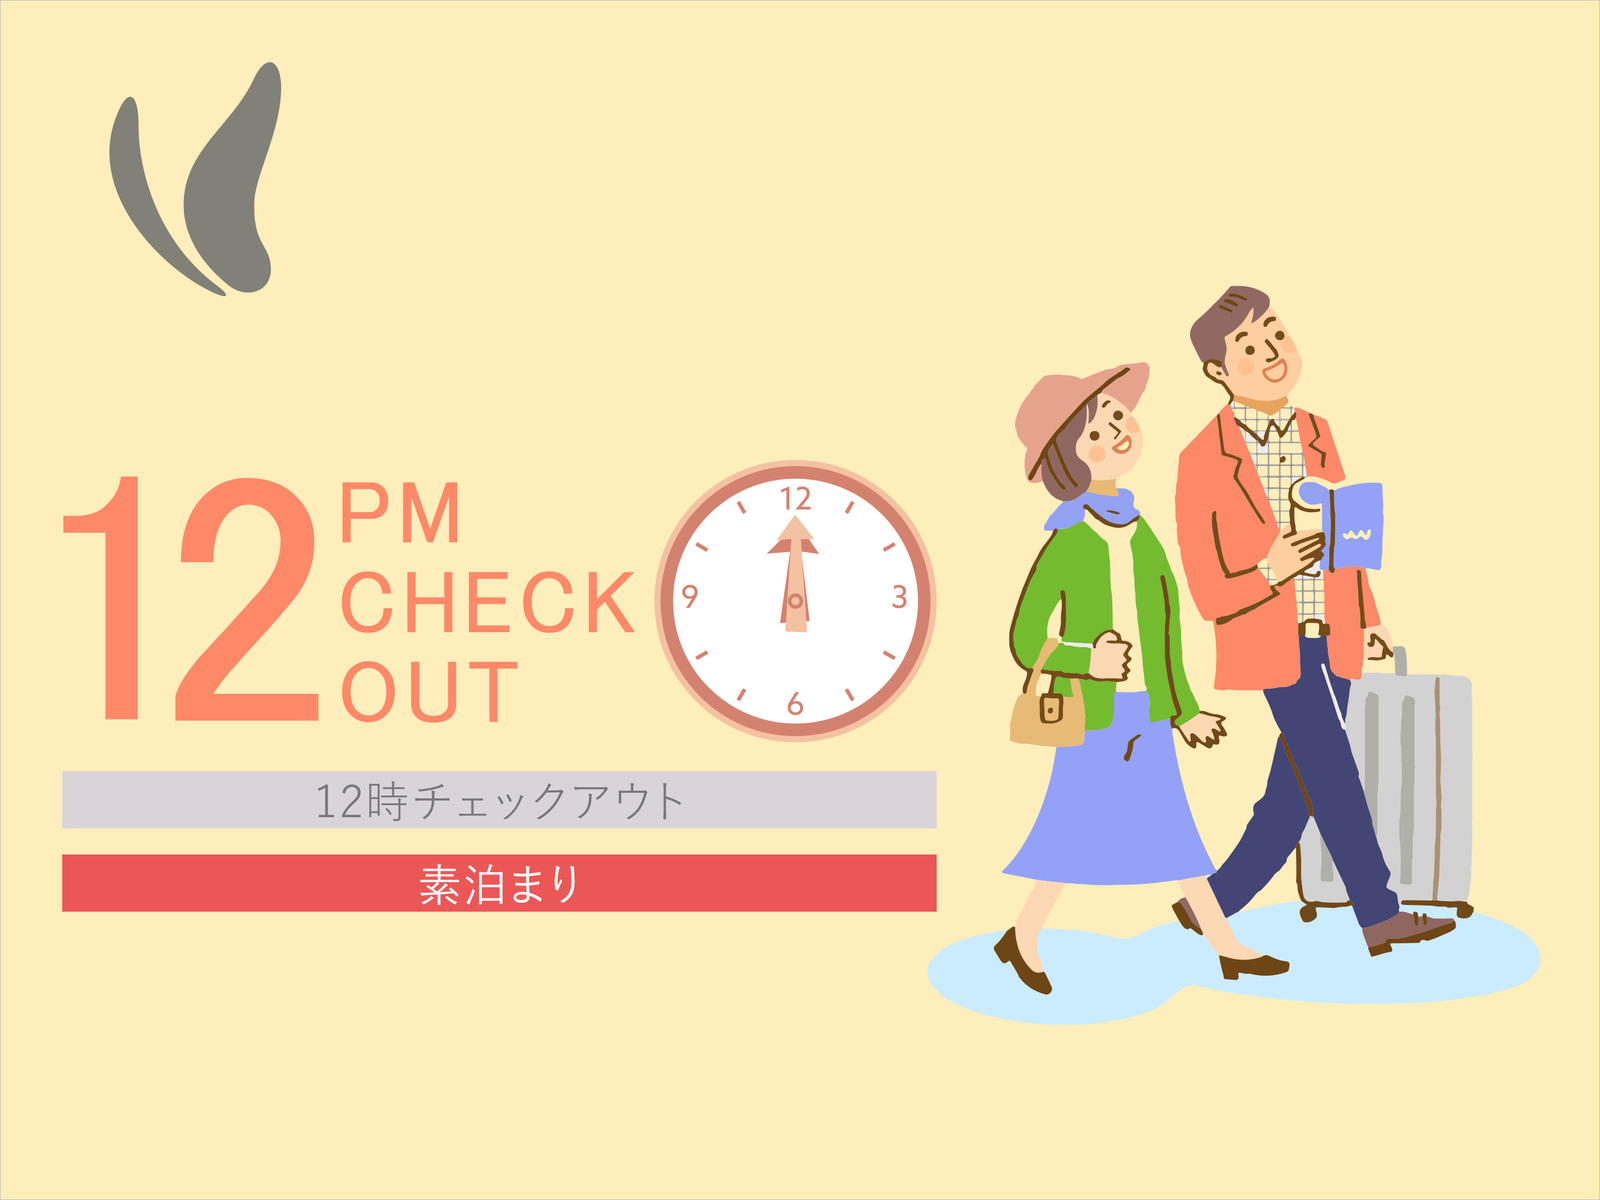 【Check out at 12:00】Slowly without hurry♪ Oversleep in morning ~ Without meals